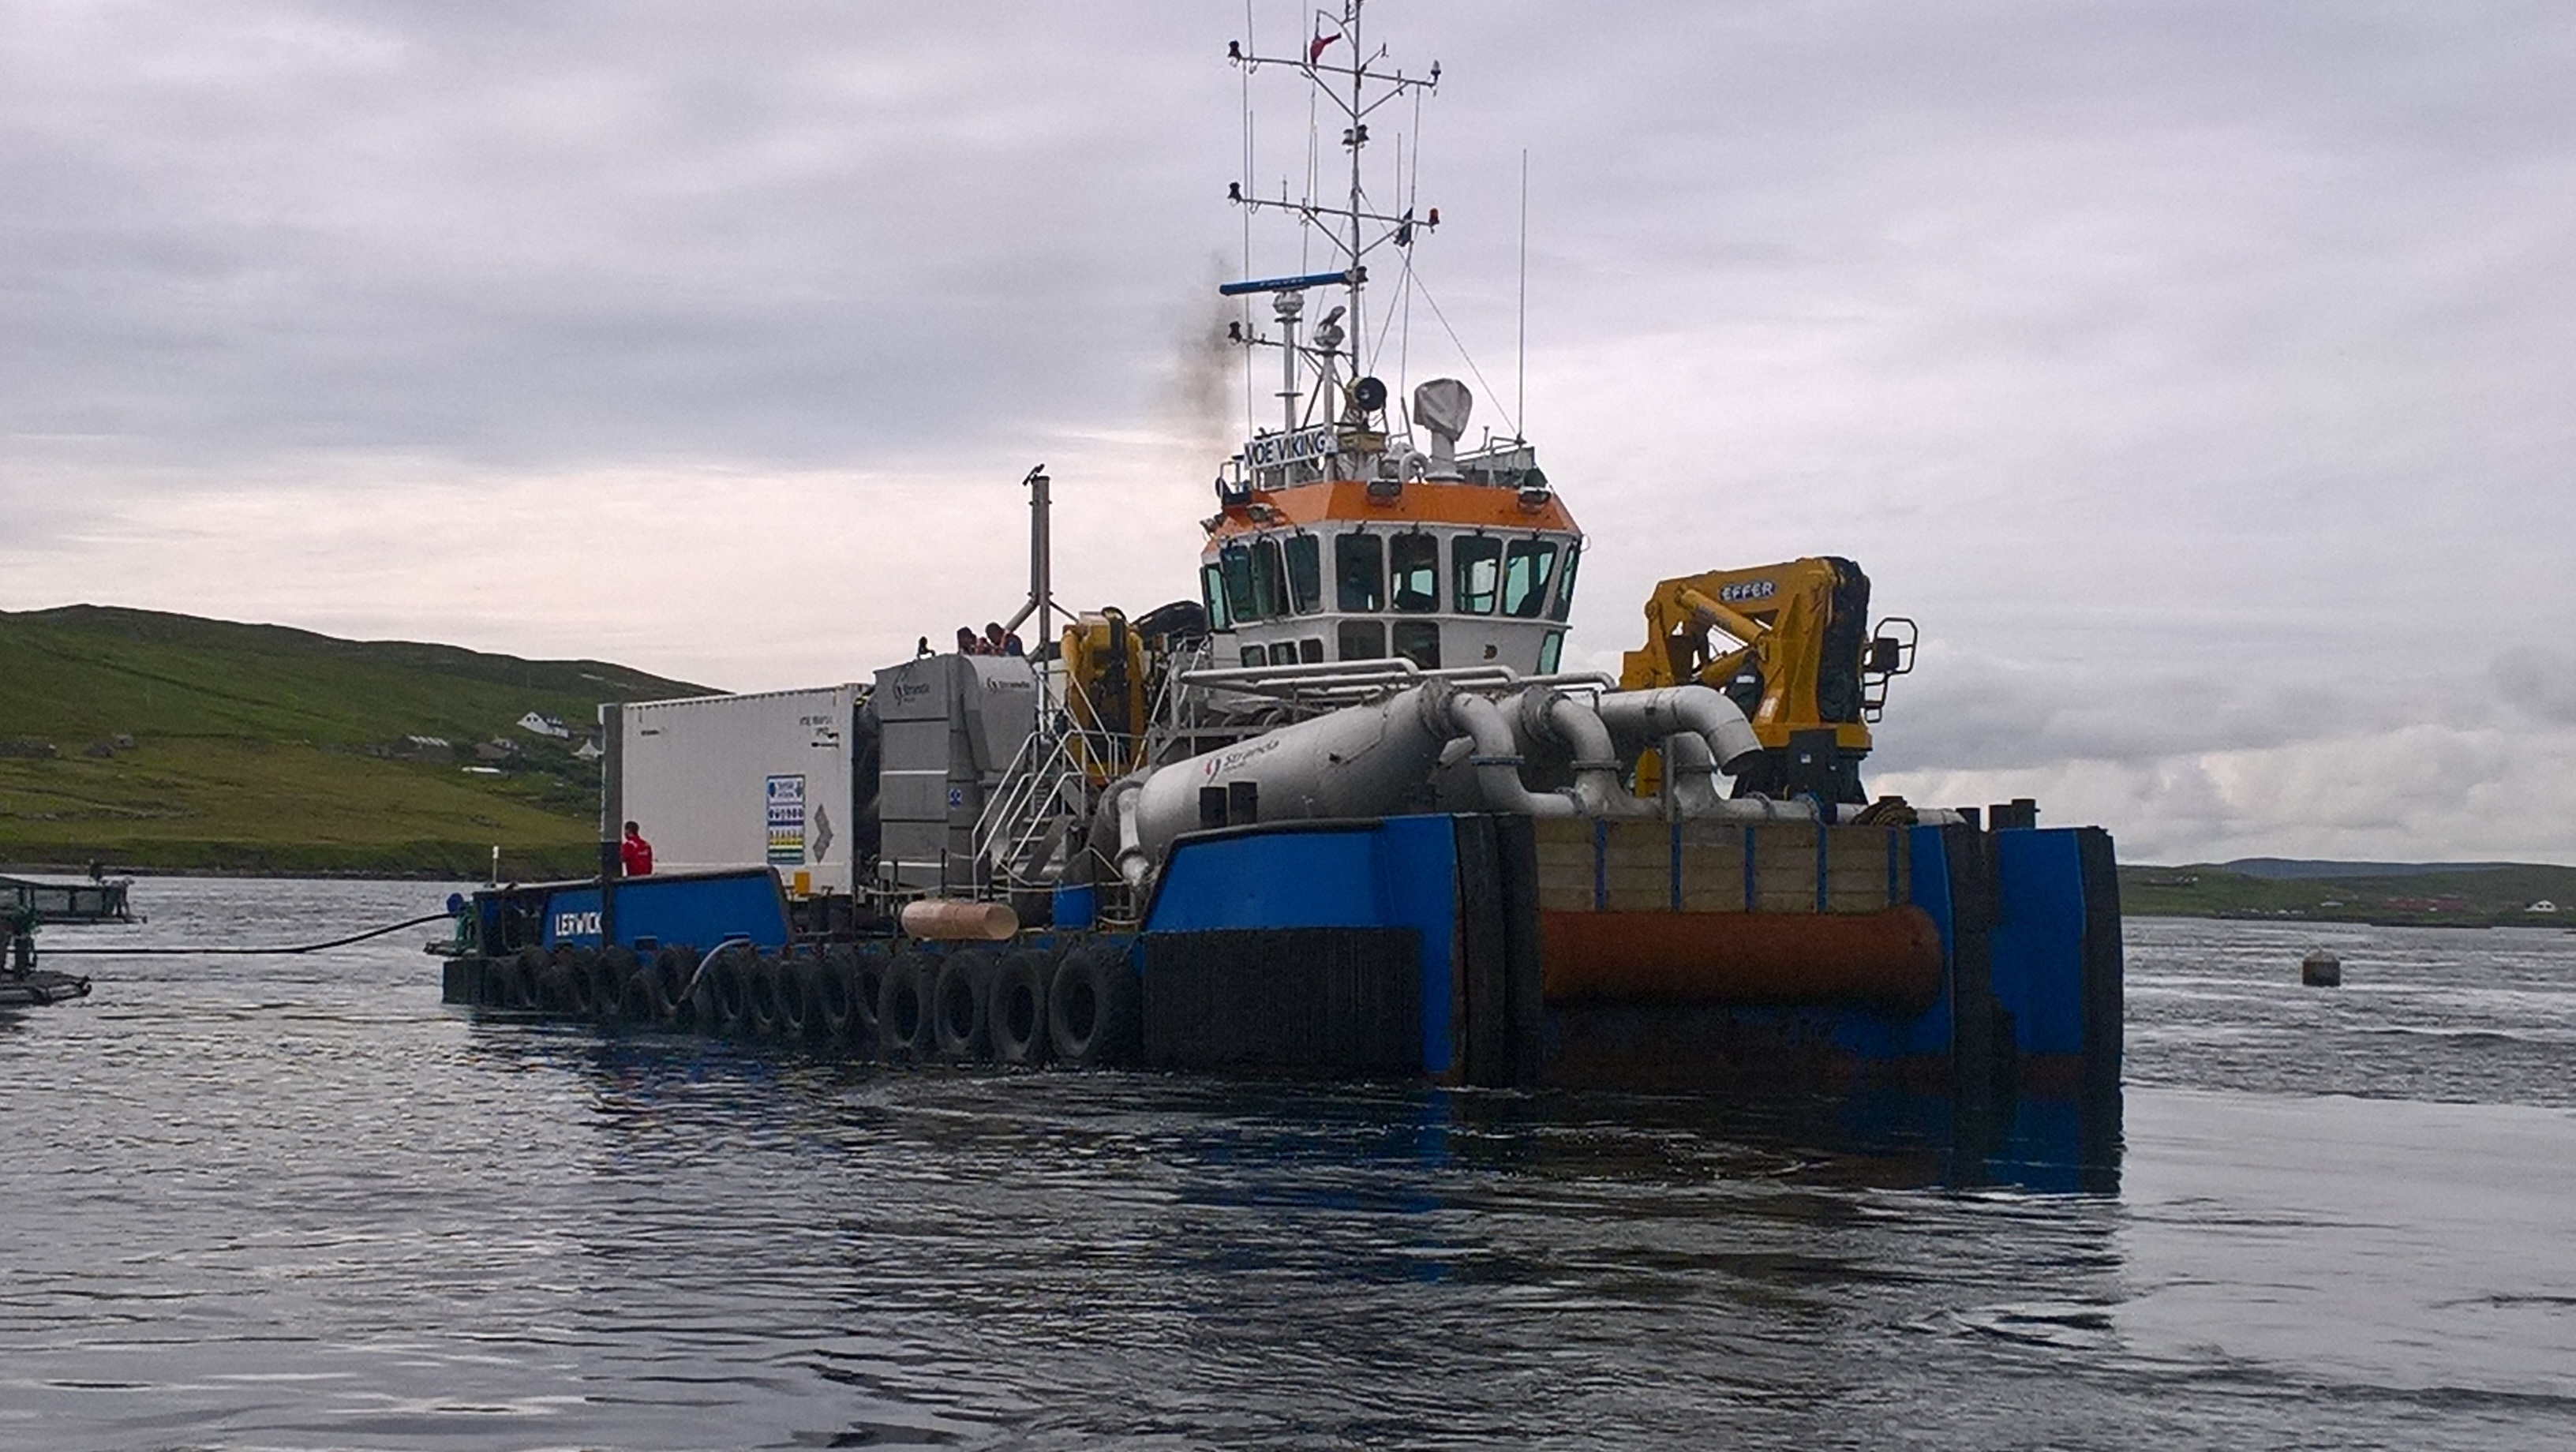 The Thermolicer pictures off Shetland.